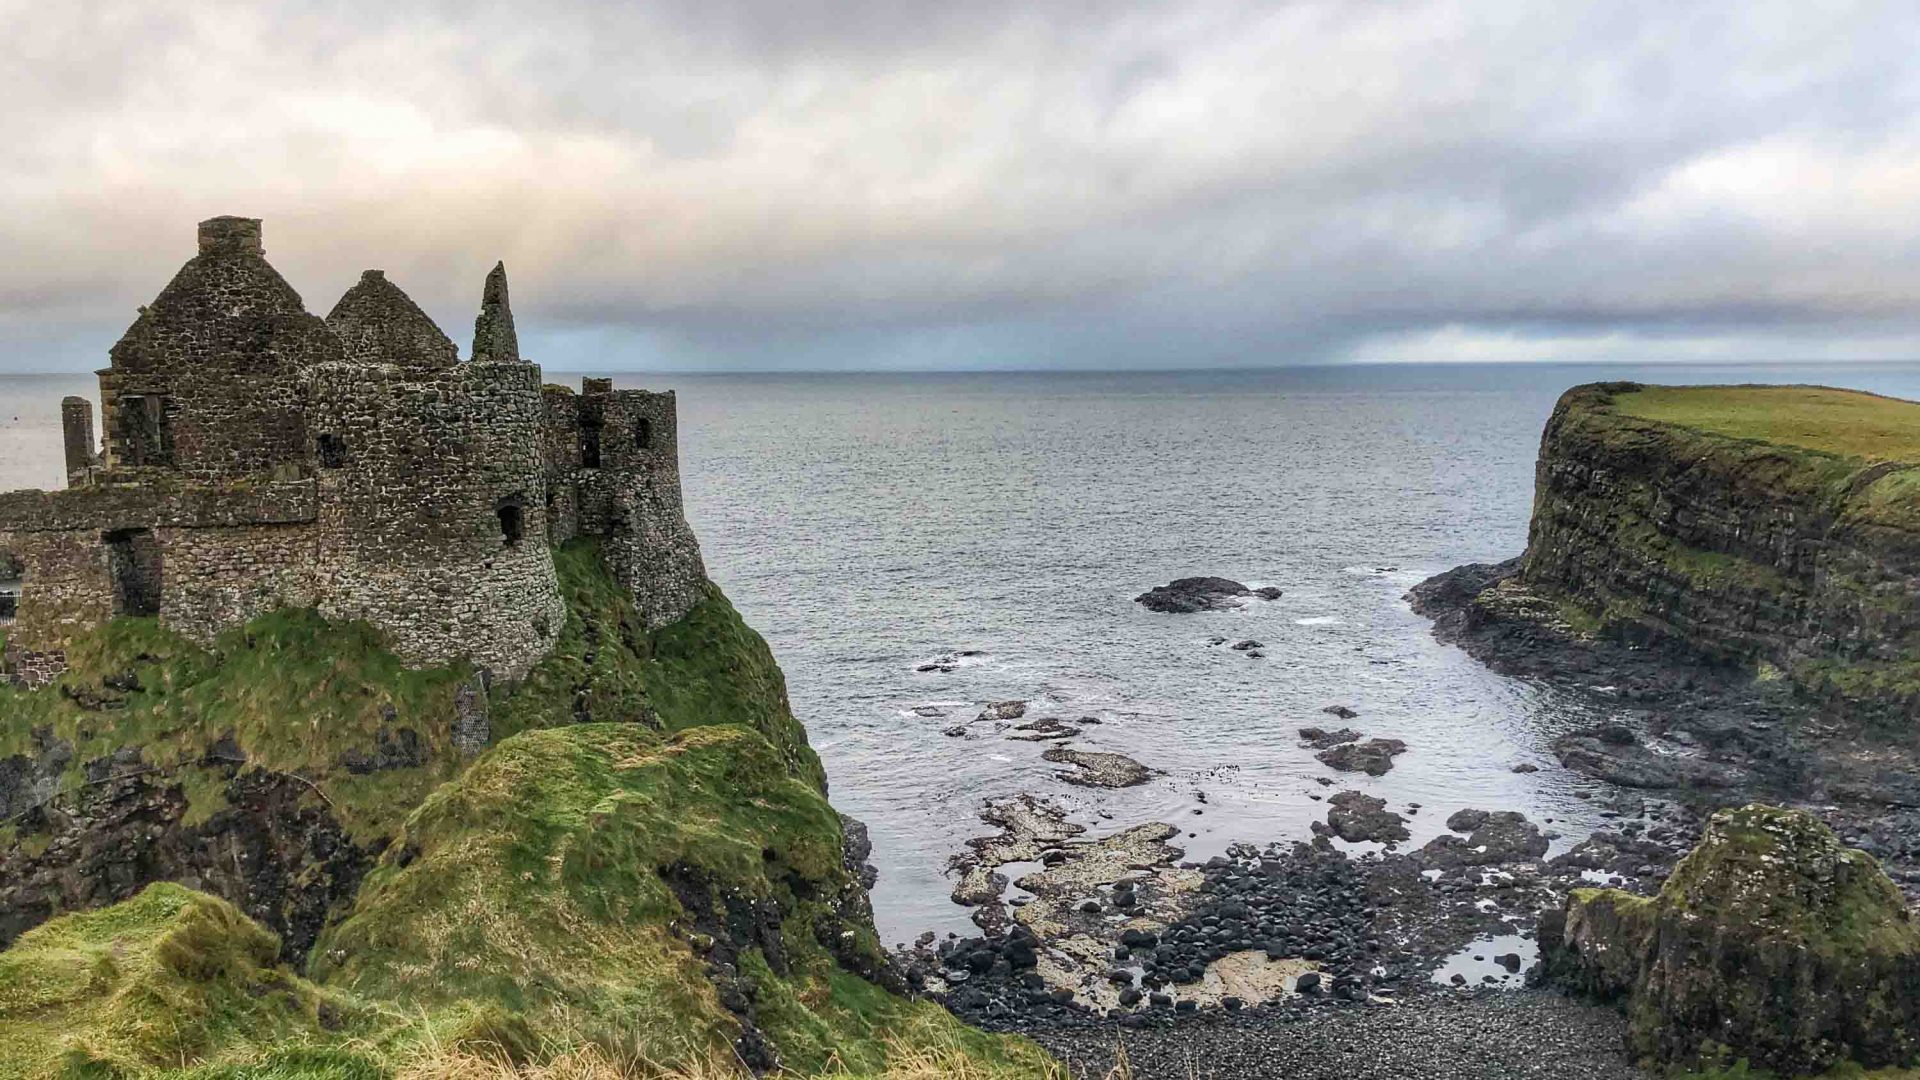 Dunluce Castle on the north coast of Northern Ireland.